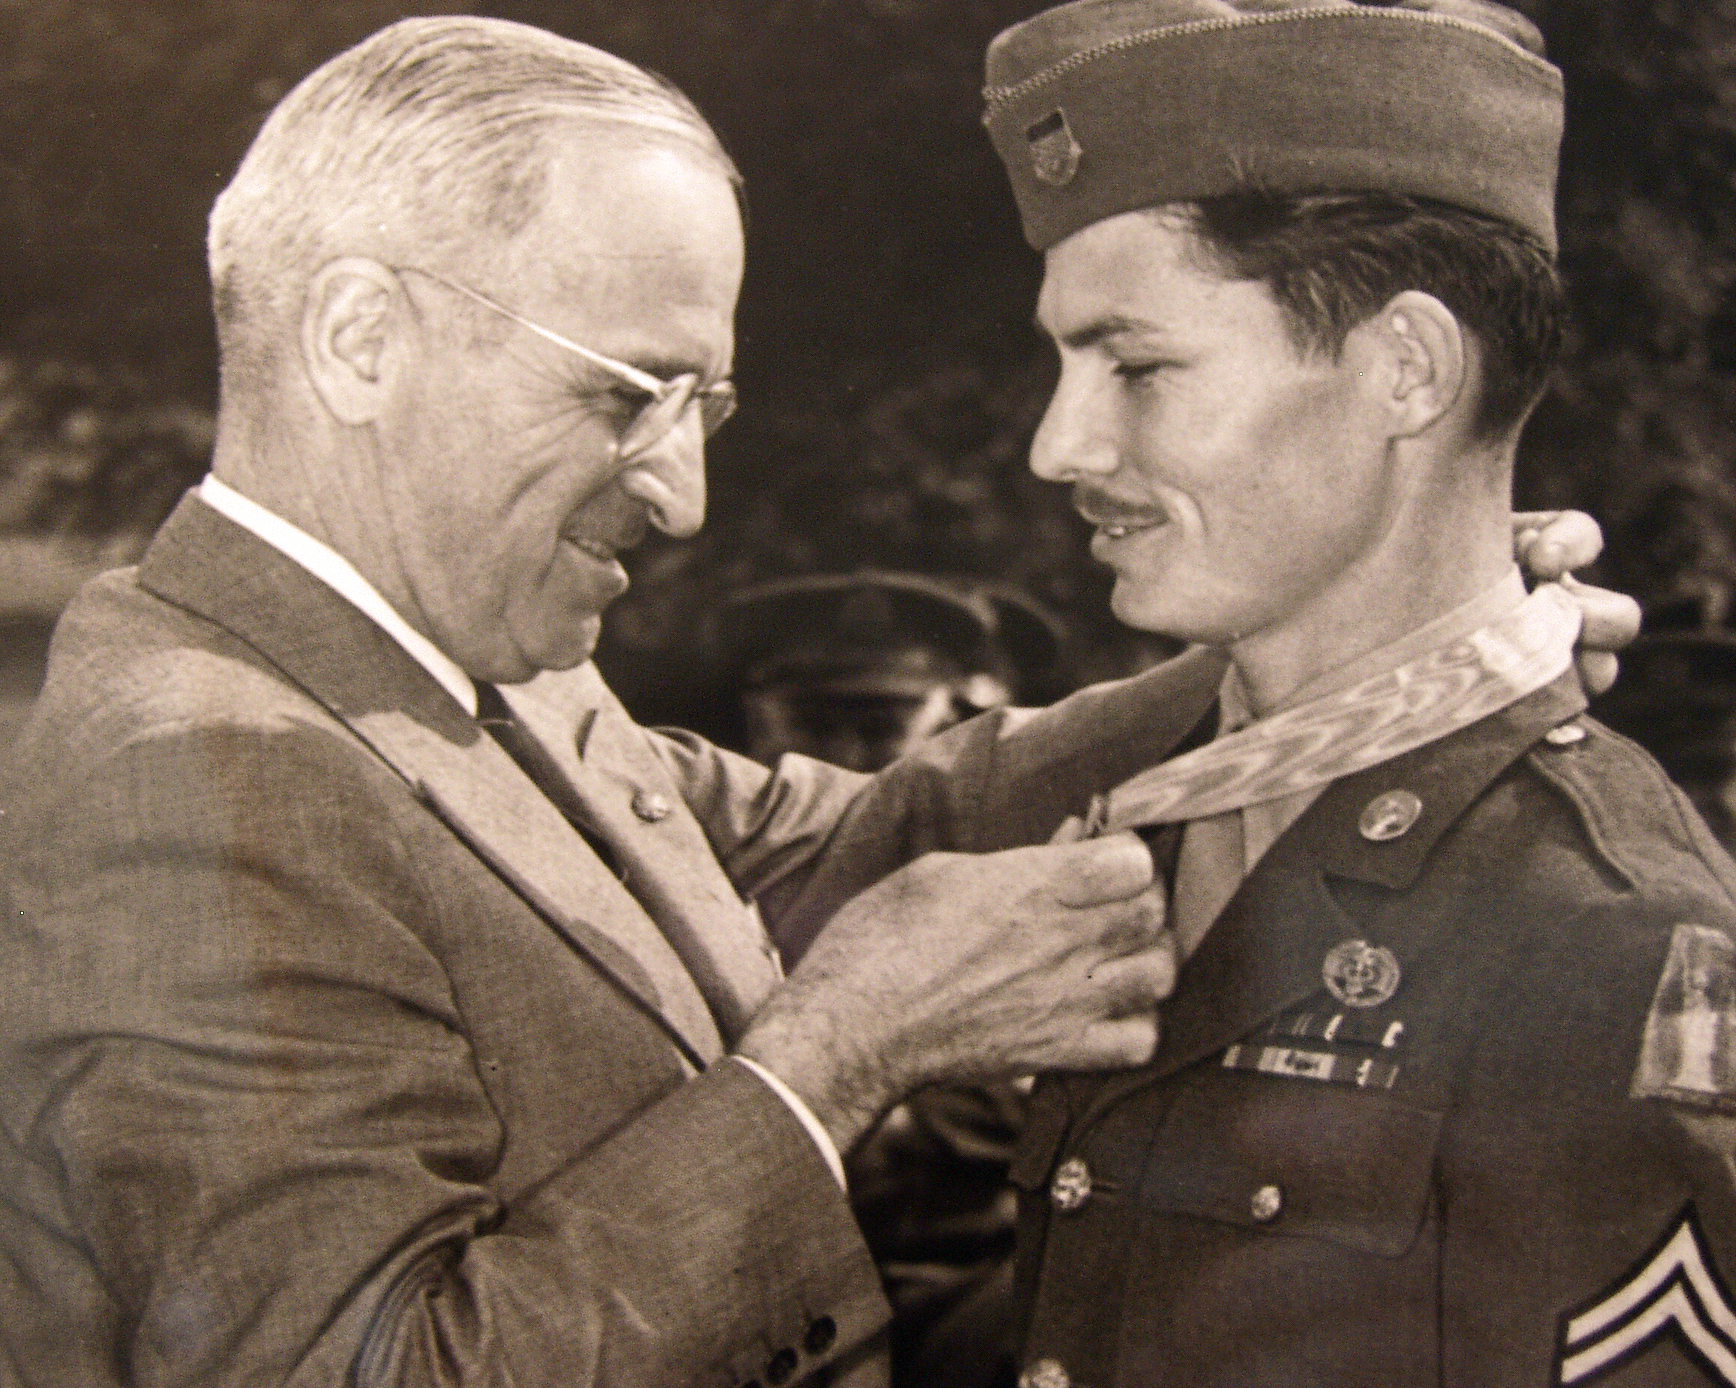 Desmond Doss - First Conscientious Objector to Earn Medal of Honor